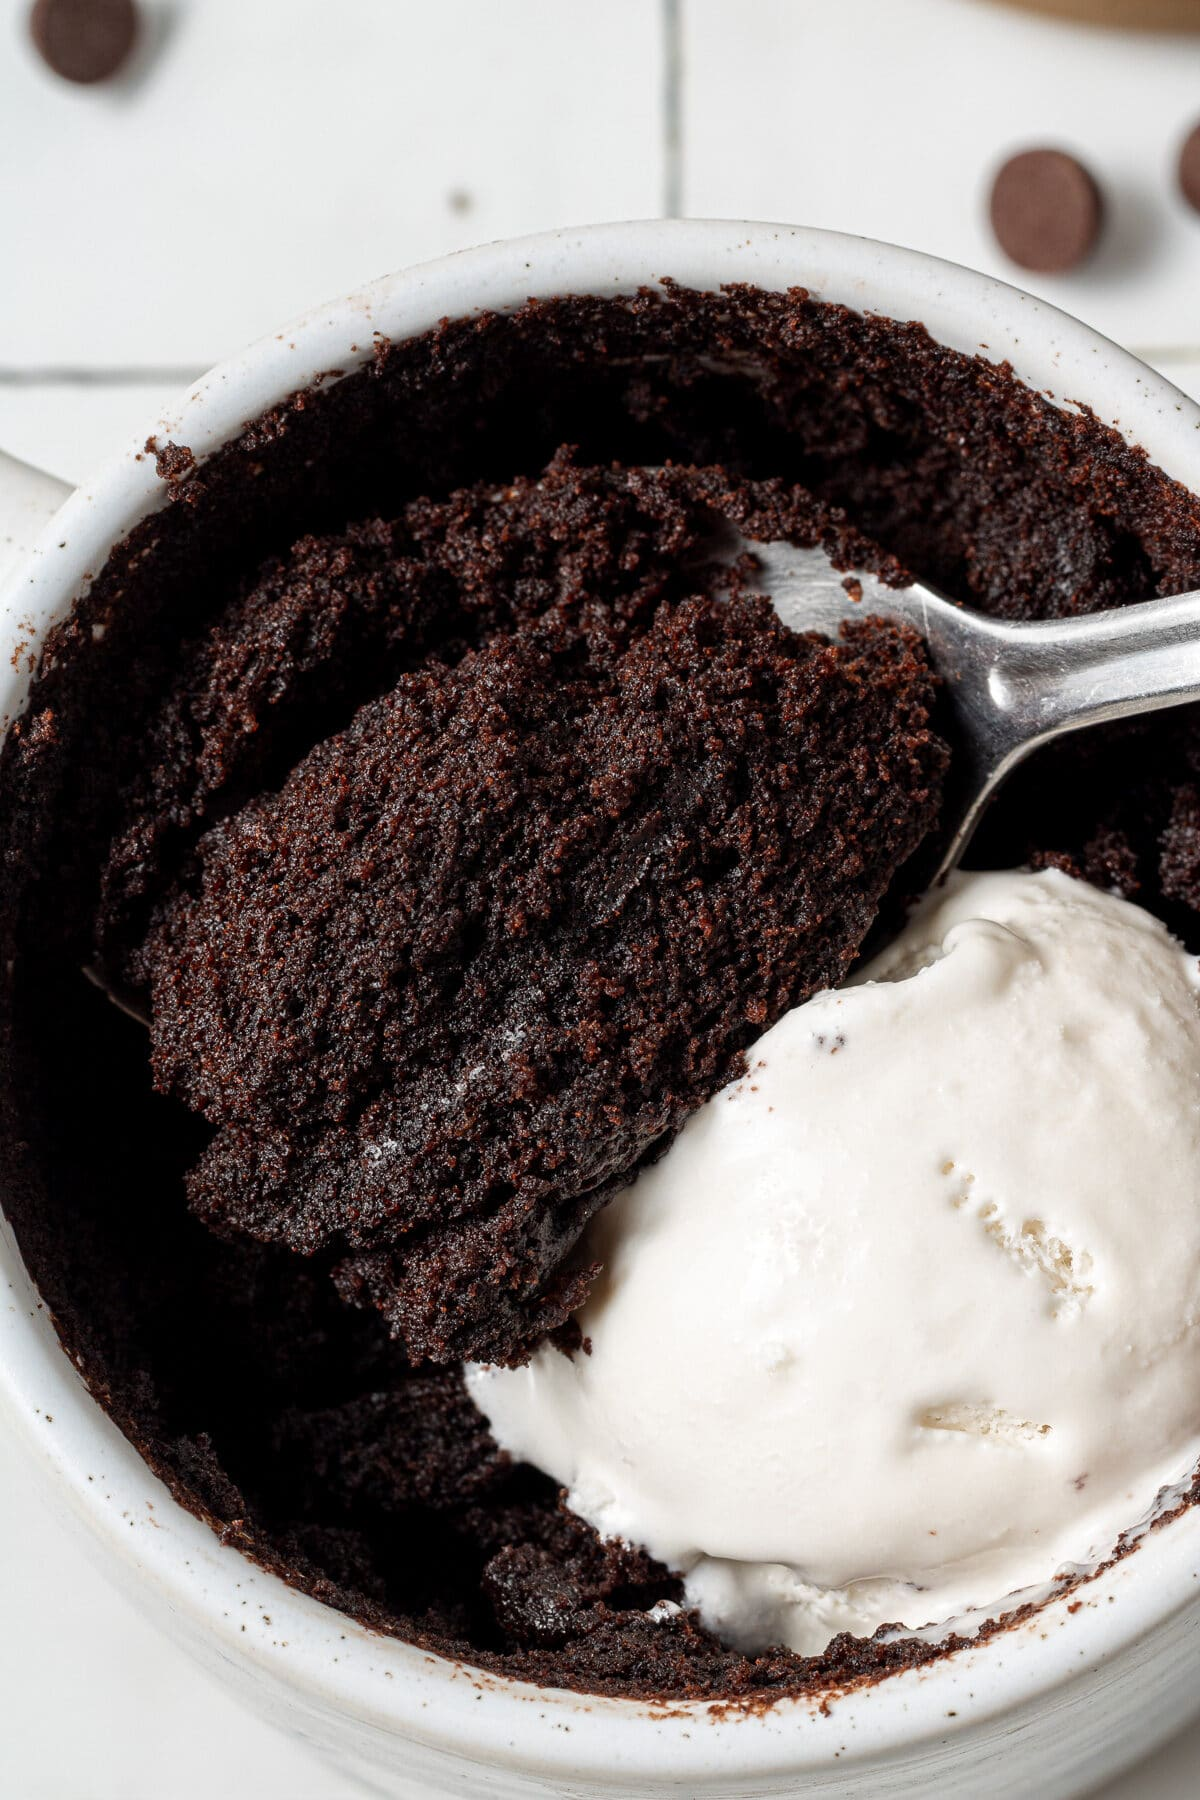 a vegan chocolate cake in a mug with a spoon and whipped cream on top